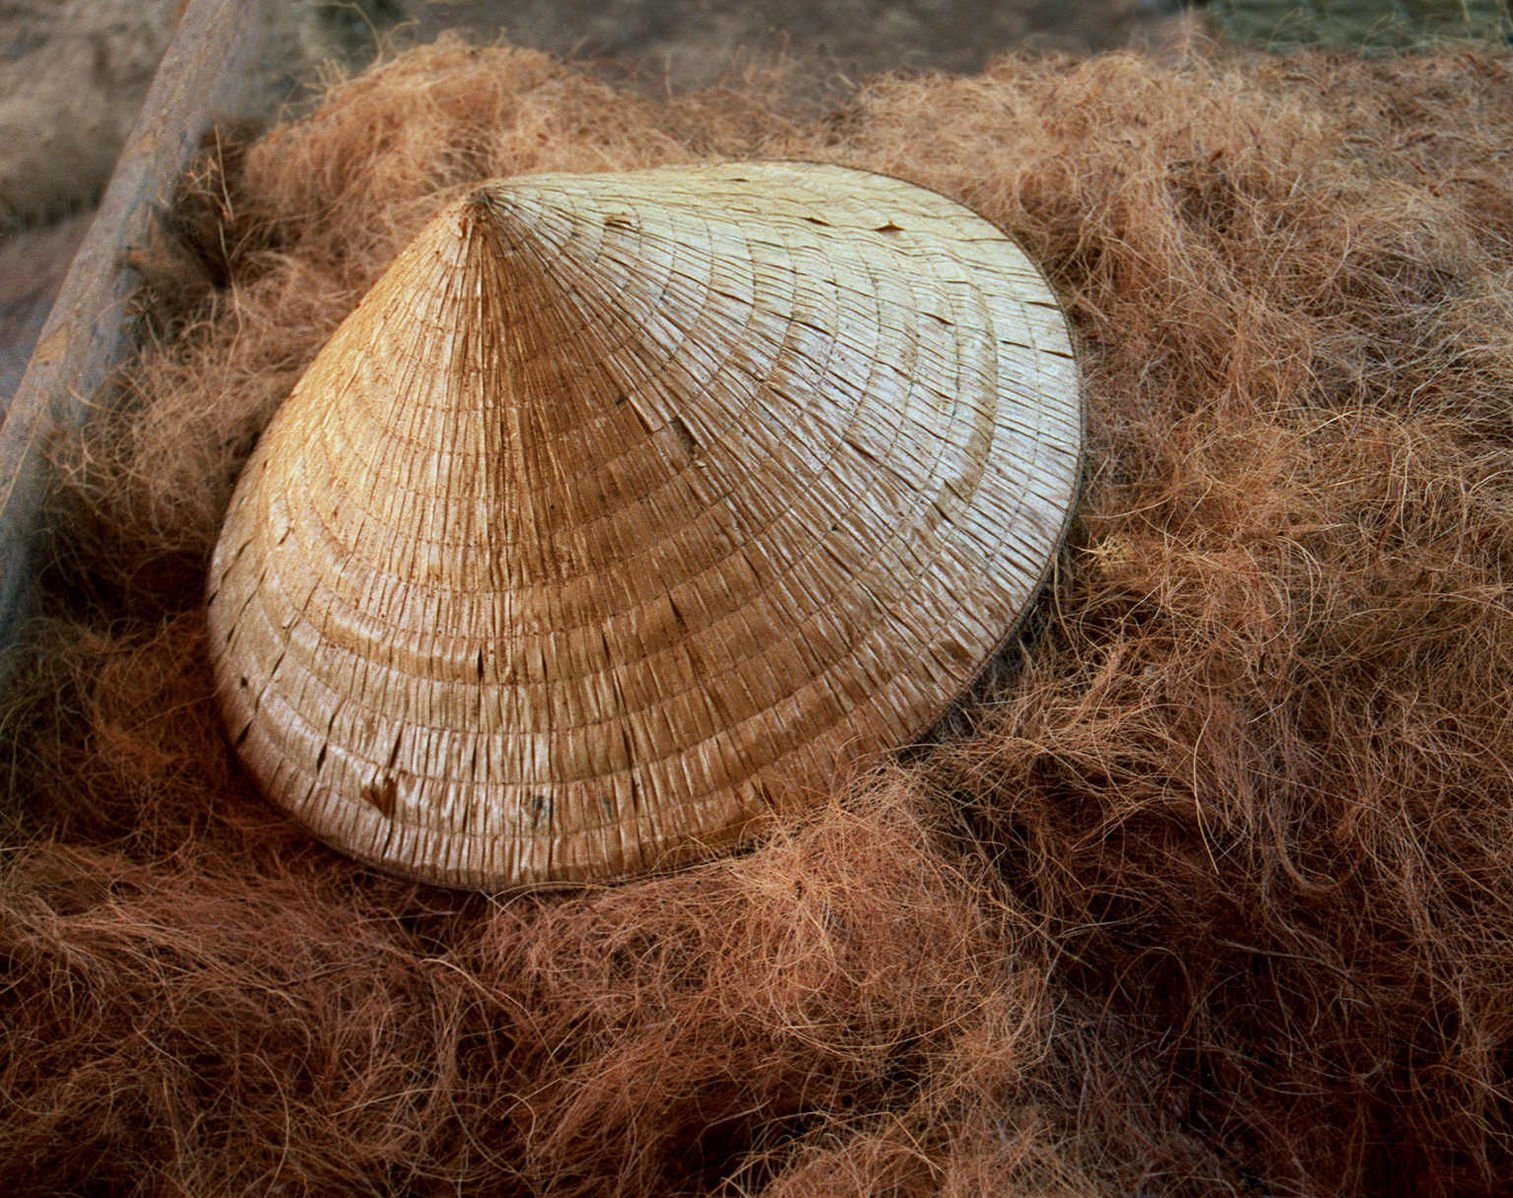 Image of a Vietnamese conical hat on a bed of straw